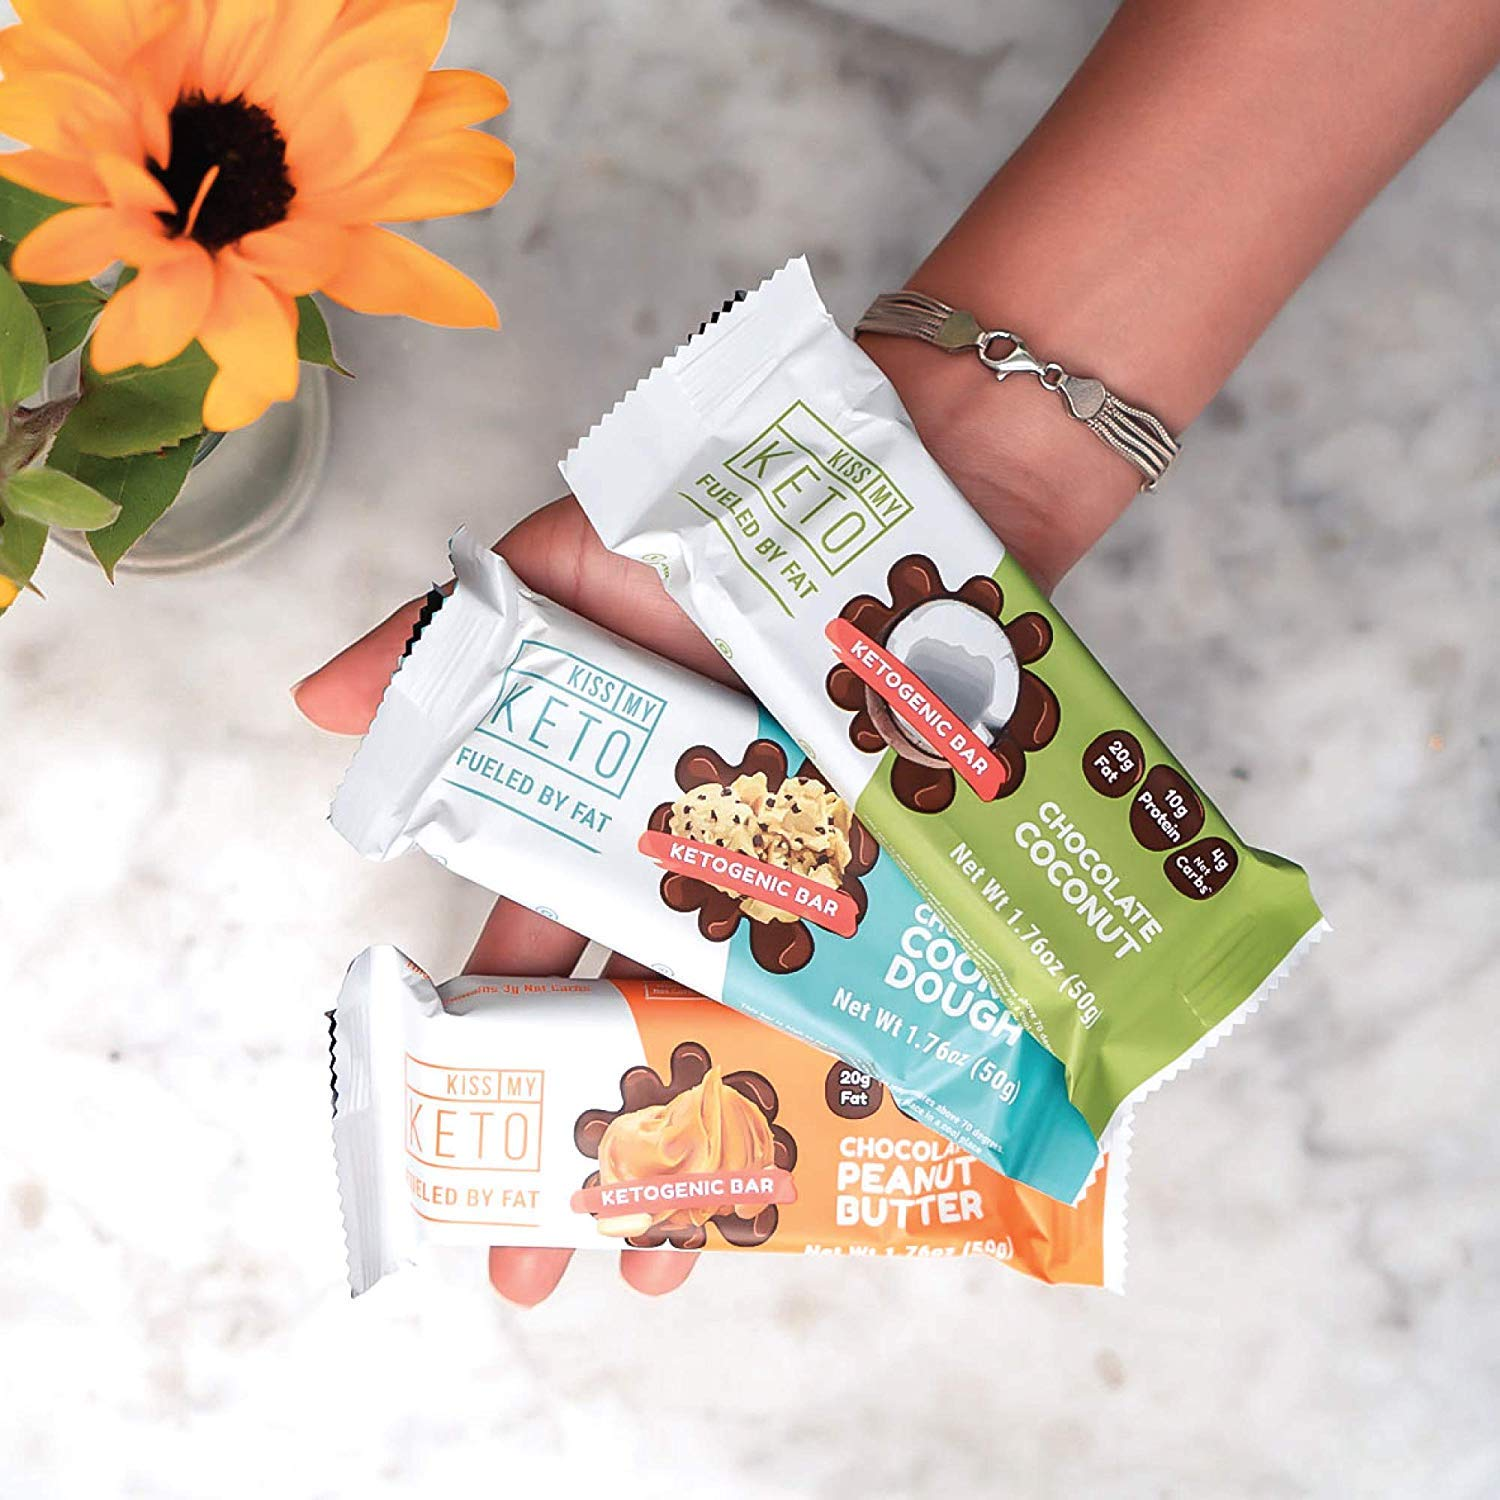 Kiss My Keto Snacks Keto Bars - Keto Chocolate Coconut, Nutritional Keto Food Bars, Paleo, Low Carb/Glycemic Keto Friendly Foods, All Natural On-The-Go Snacks, Quality Fat Bars, 4g Net Carbs by Kiss My Keto